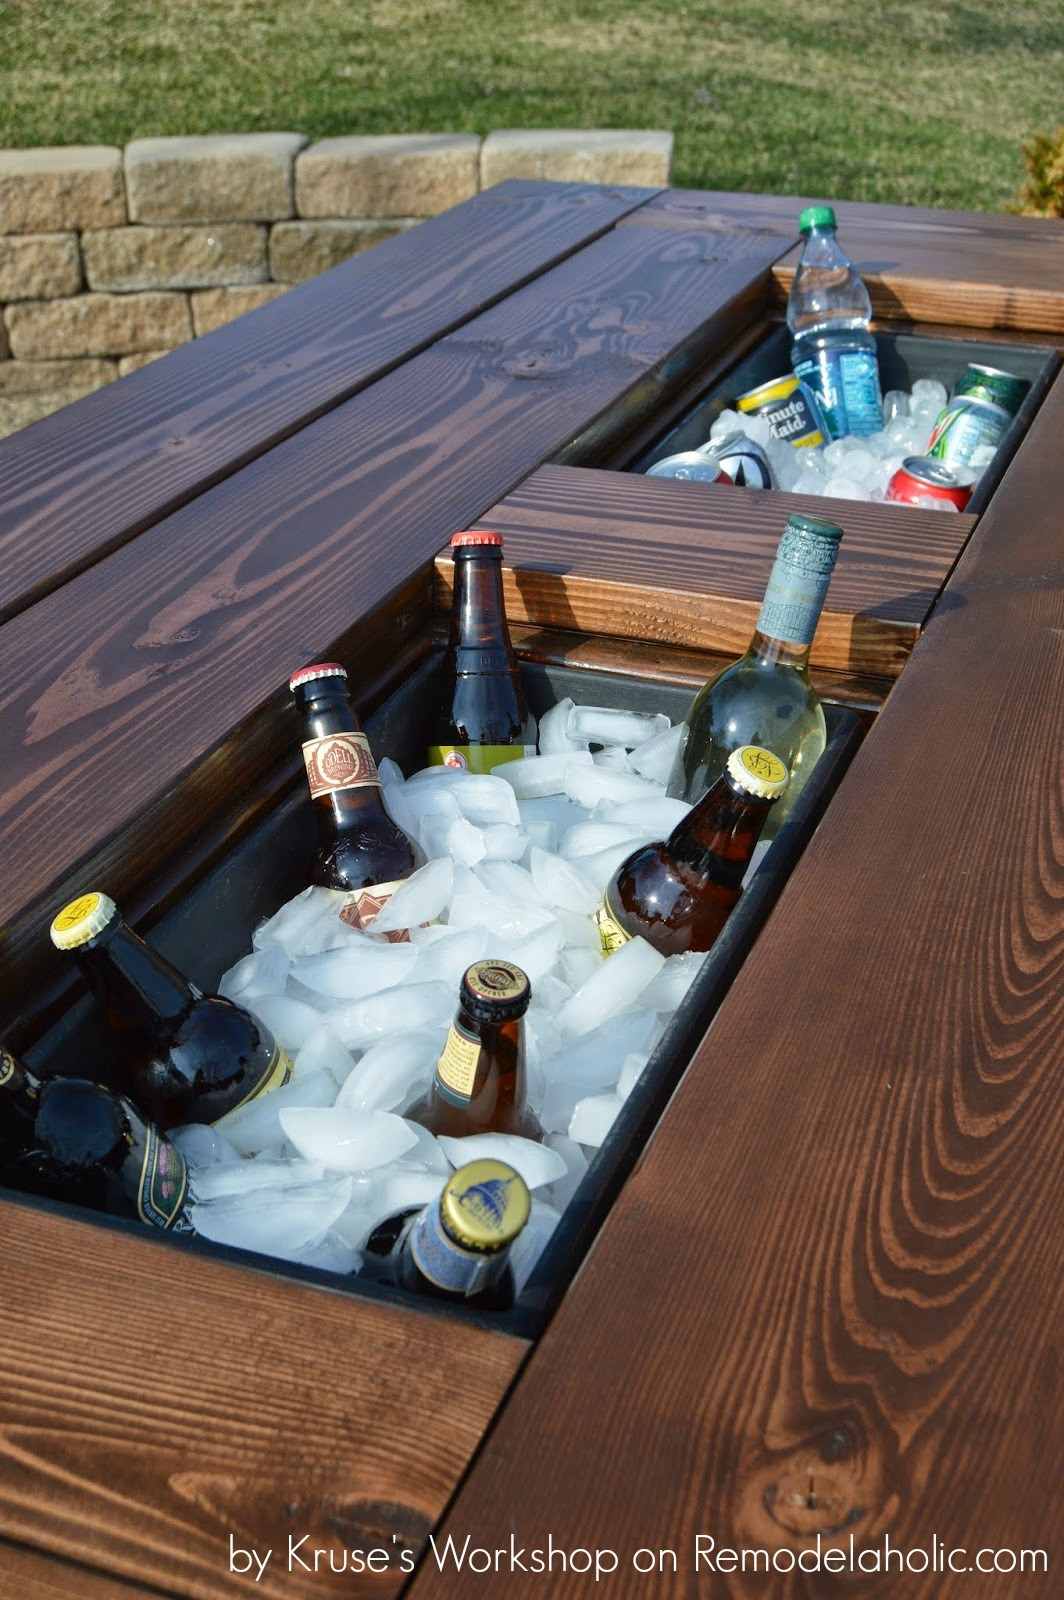 remodelaholic building plans patio table with built drink coolers build from planter boxes kruses work outdoor side beverage cooler long cabinet spring mattress pine and chairs